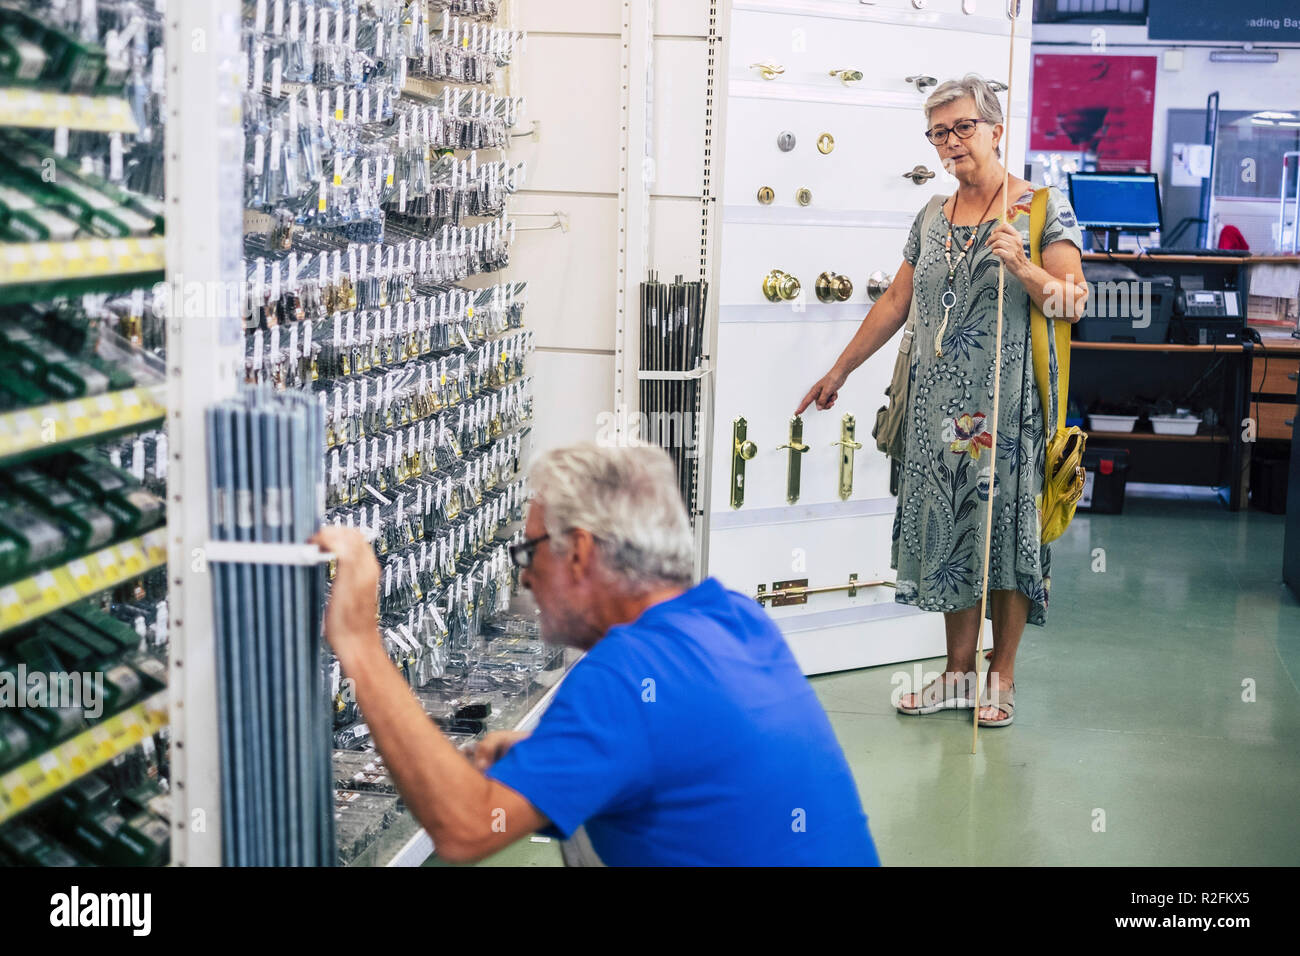 Senior adult couple in hardware shop together looking for and choosing stuffs to build or repair furnitures or other things at home. mature people  working and doing shoping together - Stock Image